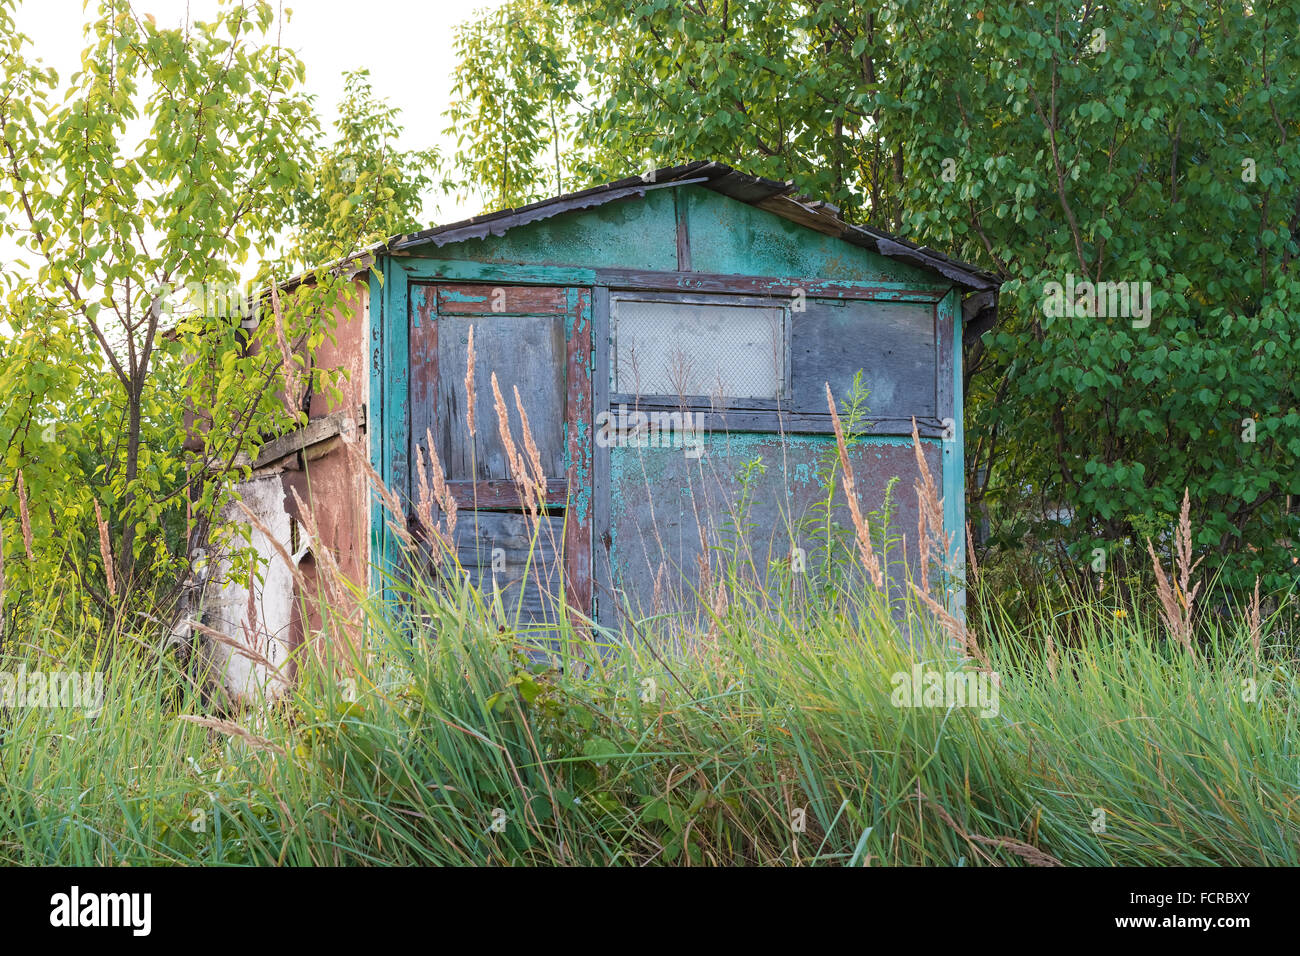 Abandoned garden house surrounded by trees and grass. Shooting at dawn. - Stock Image